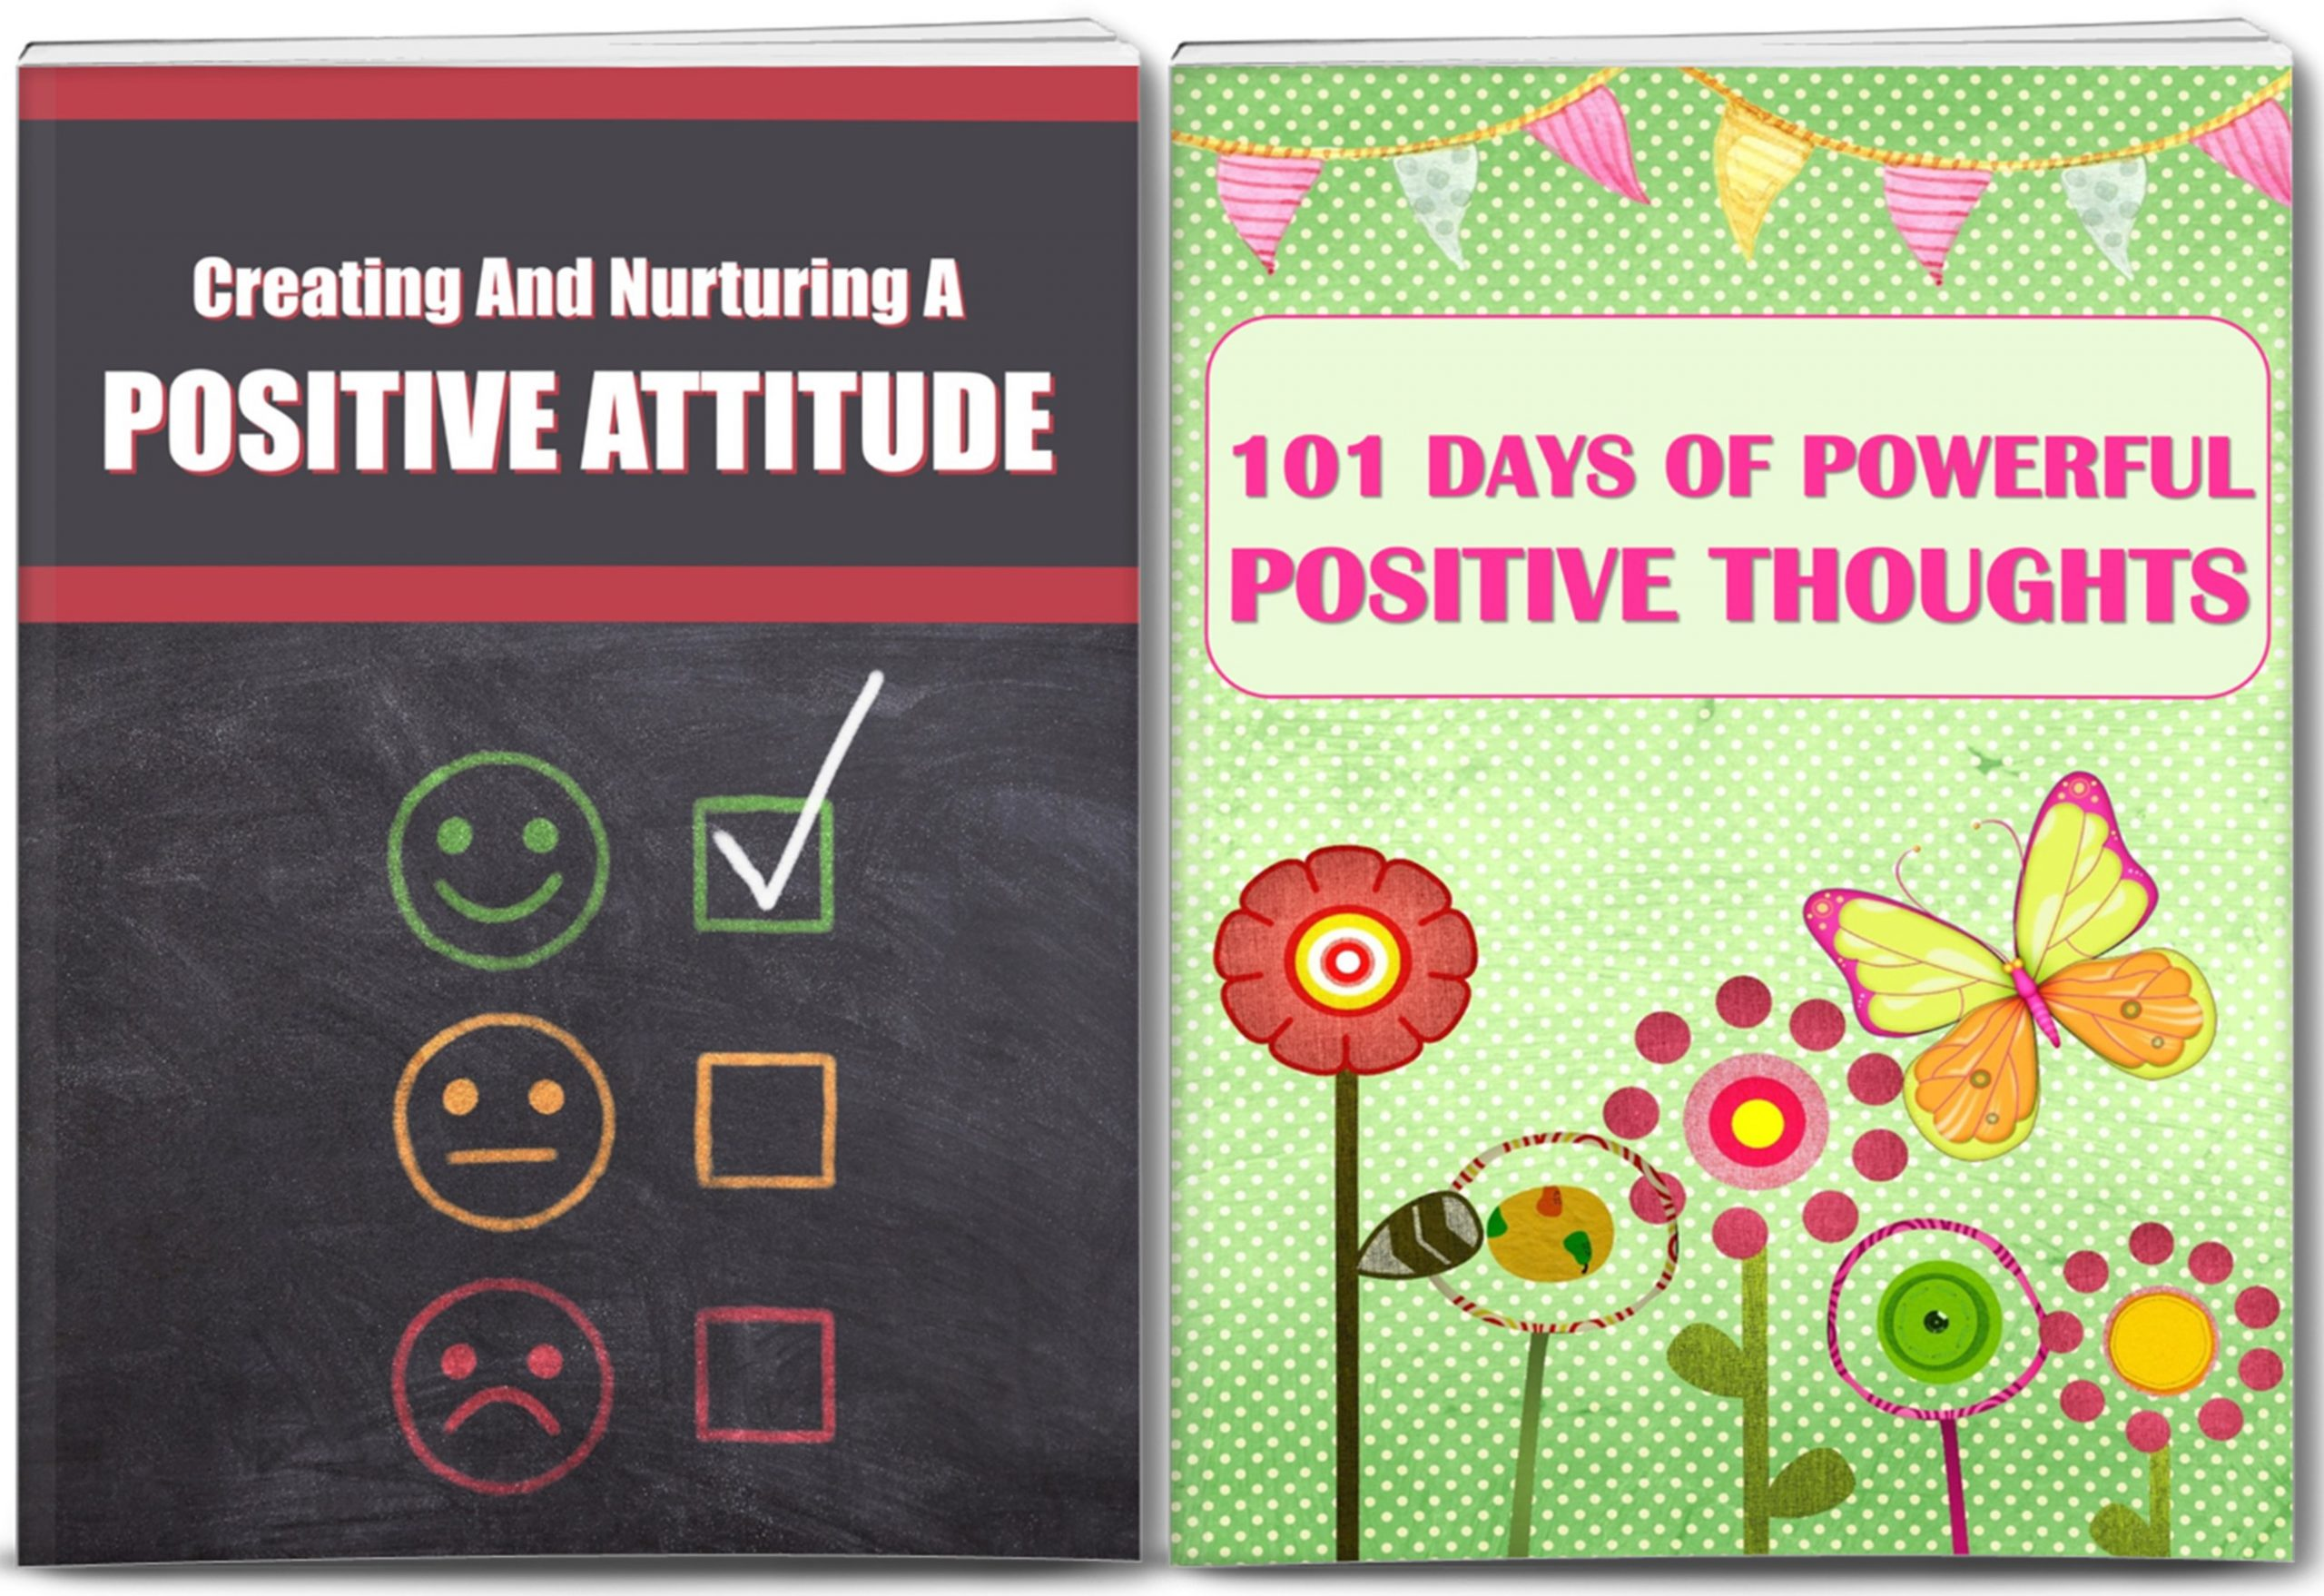 Positive Thinking: Developing A Positive Attitude Giant PLR